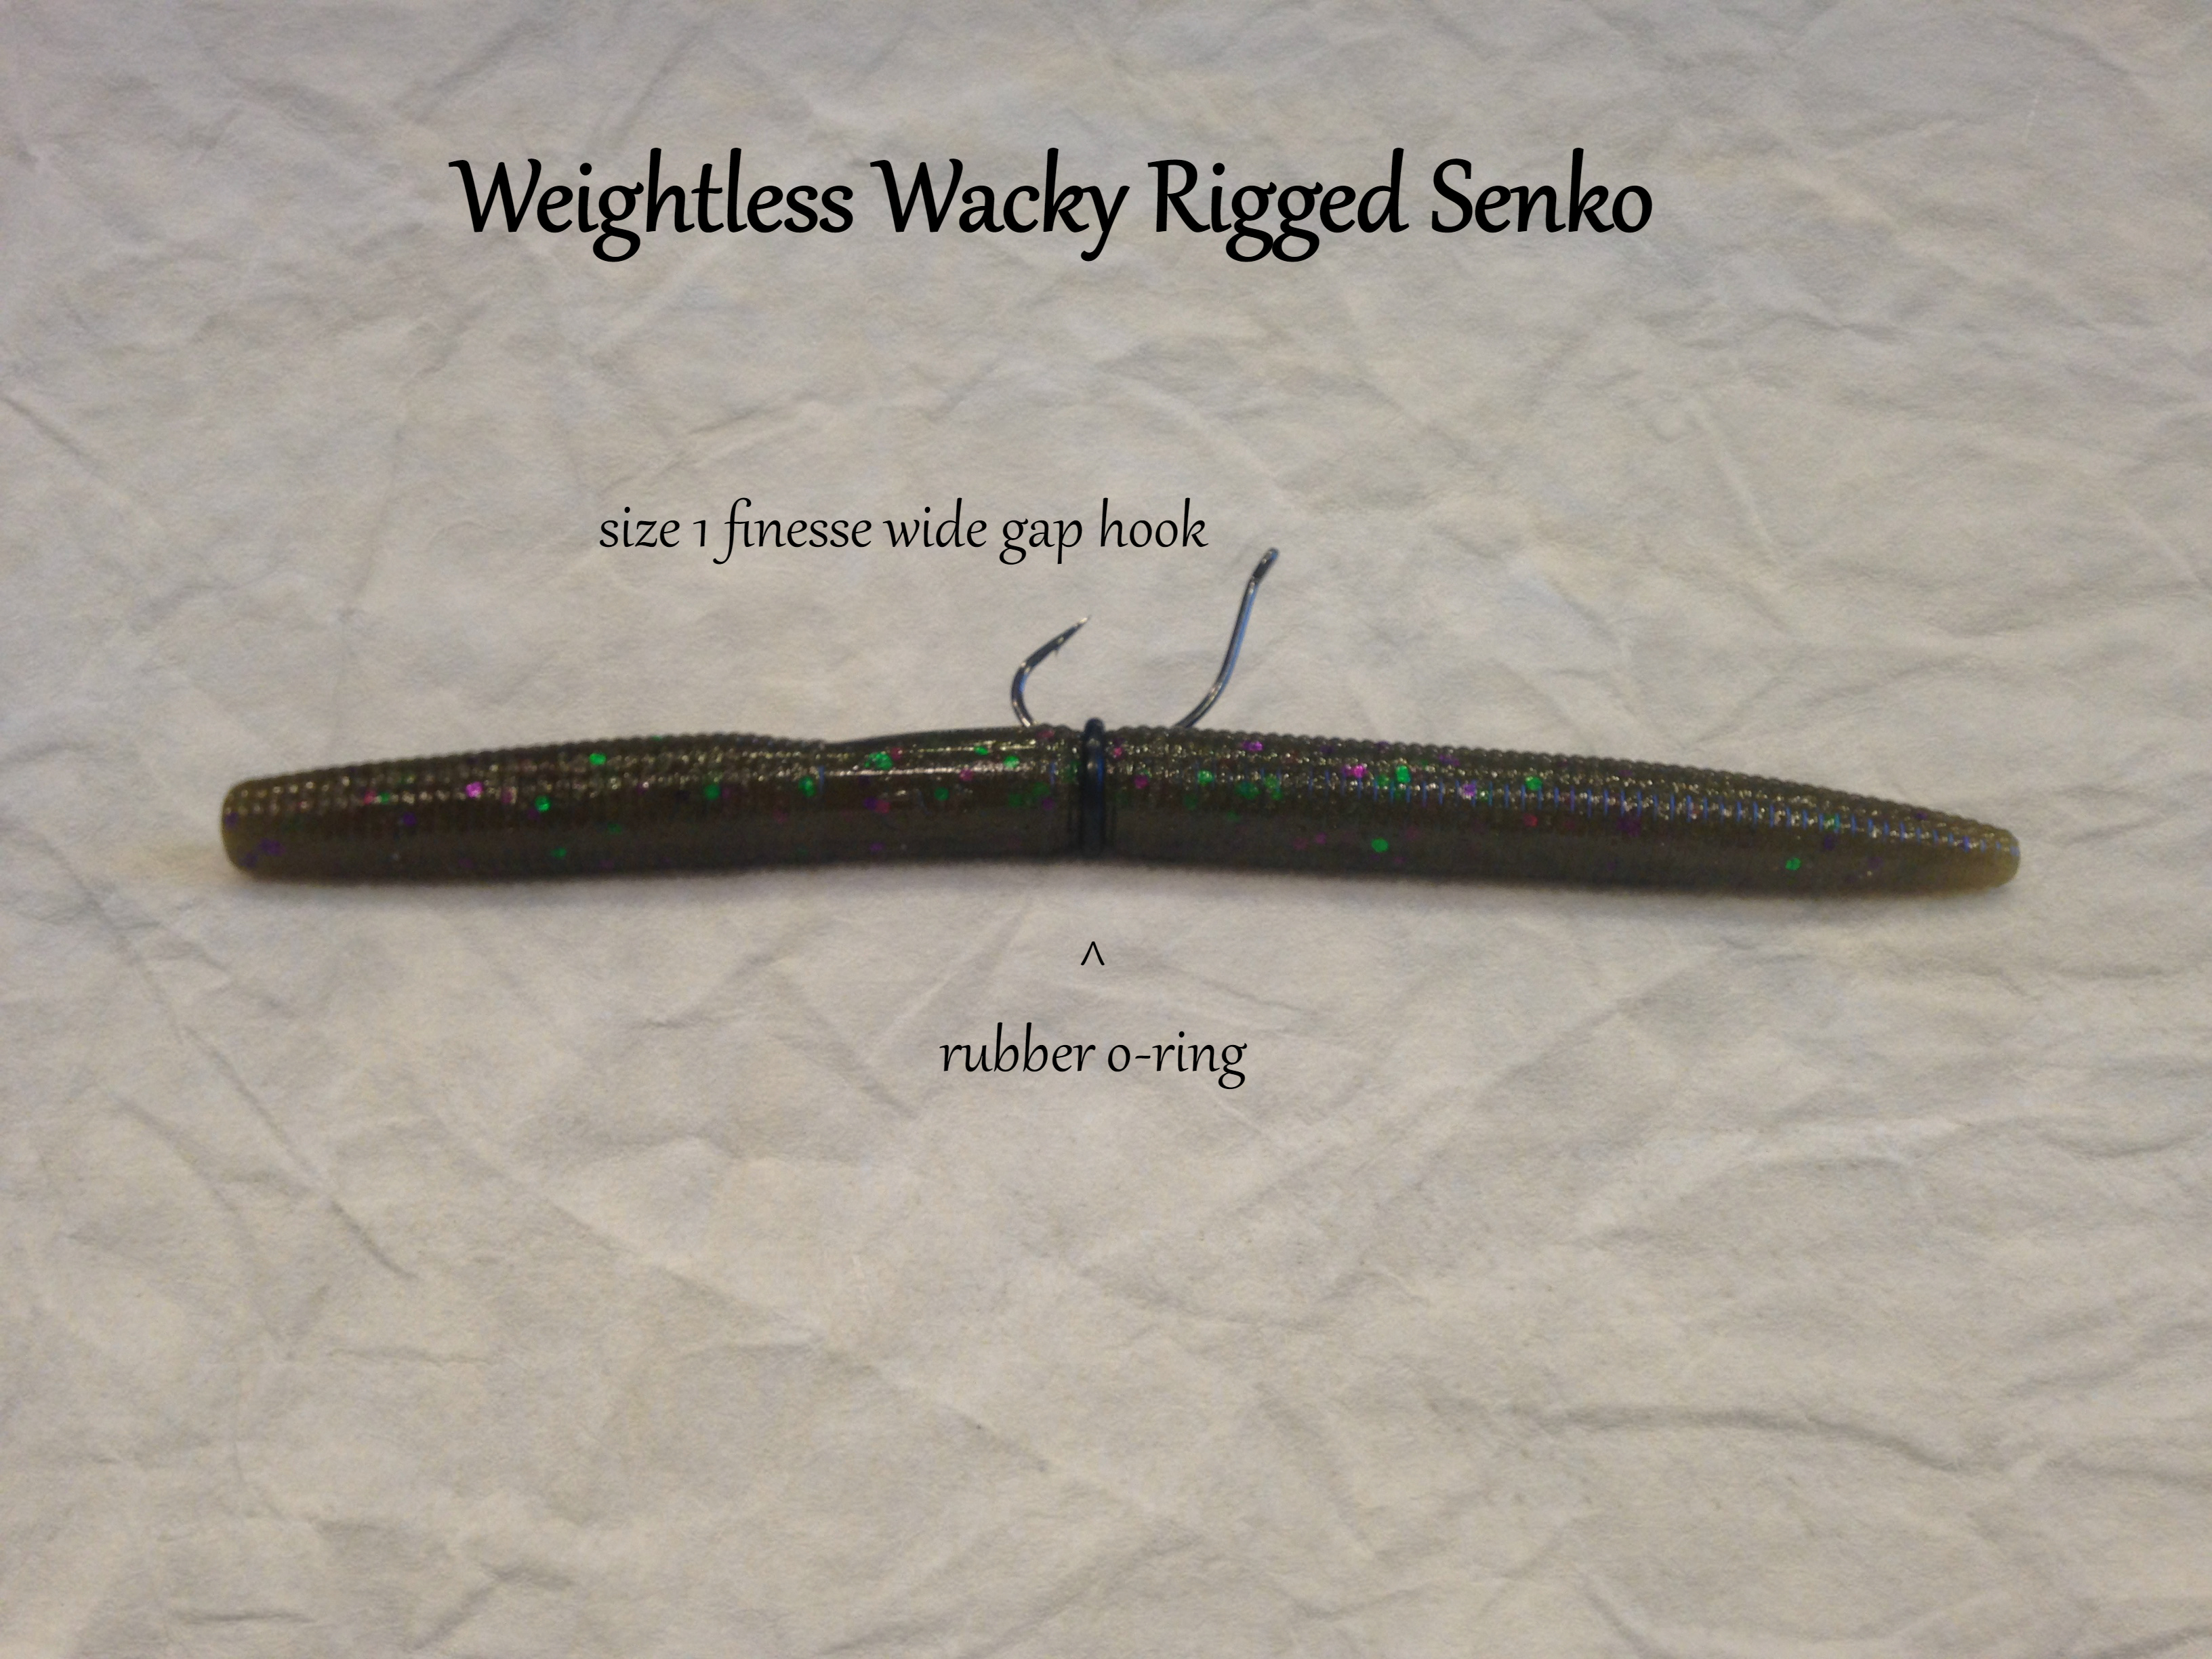 Real Fish Sink-O-Ring Sink-O-Ring use Yamamoto Senko Worms Soft baits NO Tool Needed Better Hook ups O Ring Wacky Style Rigging rig orings